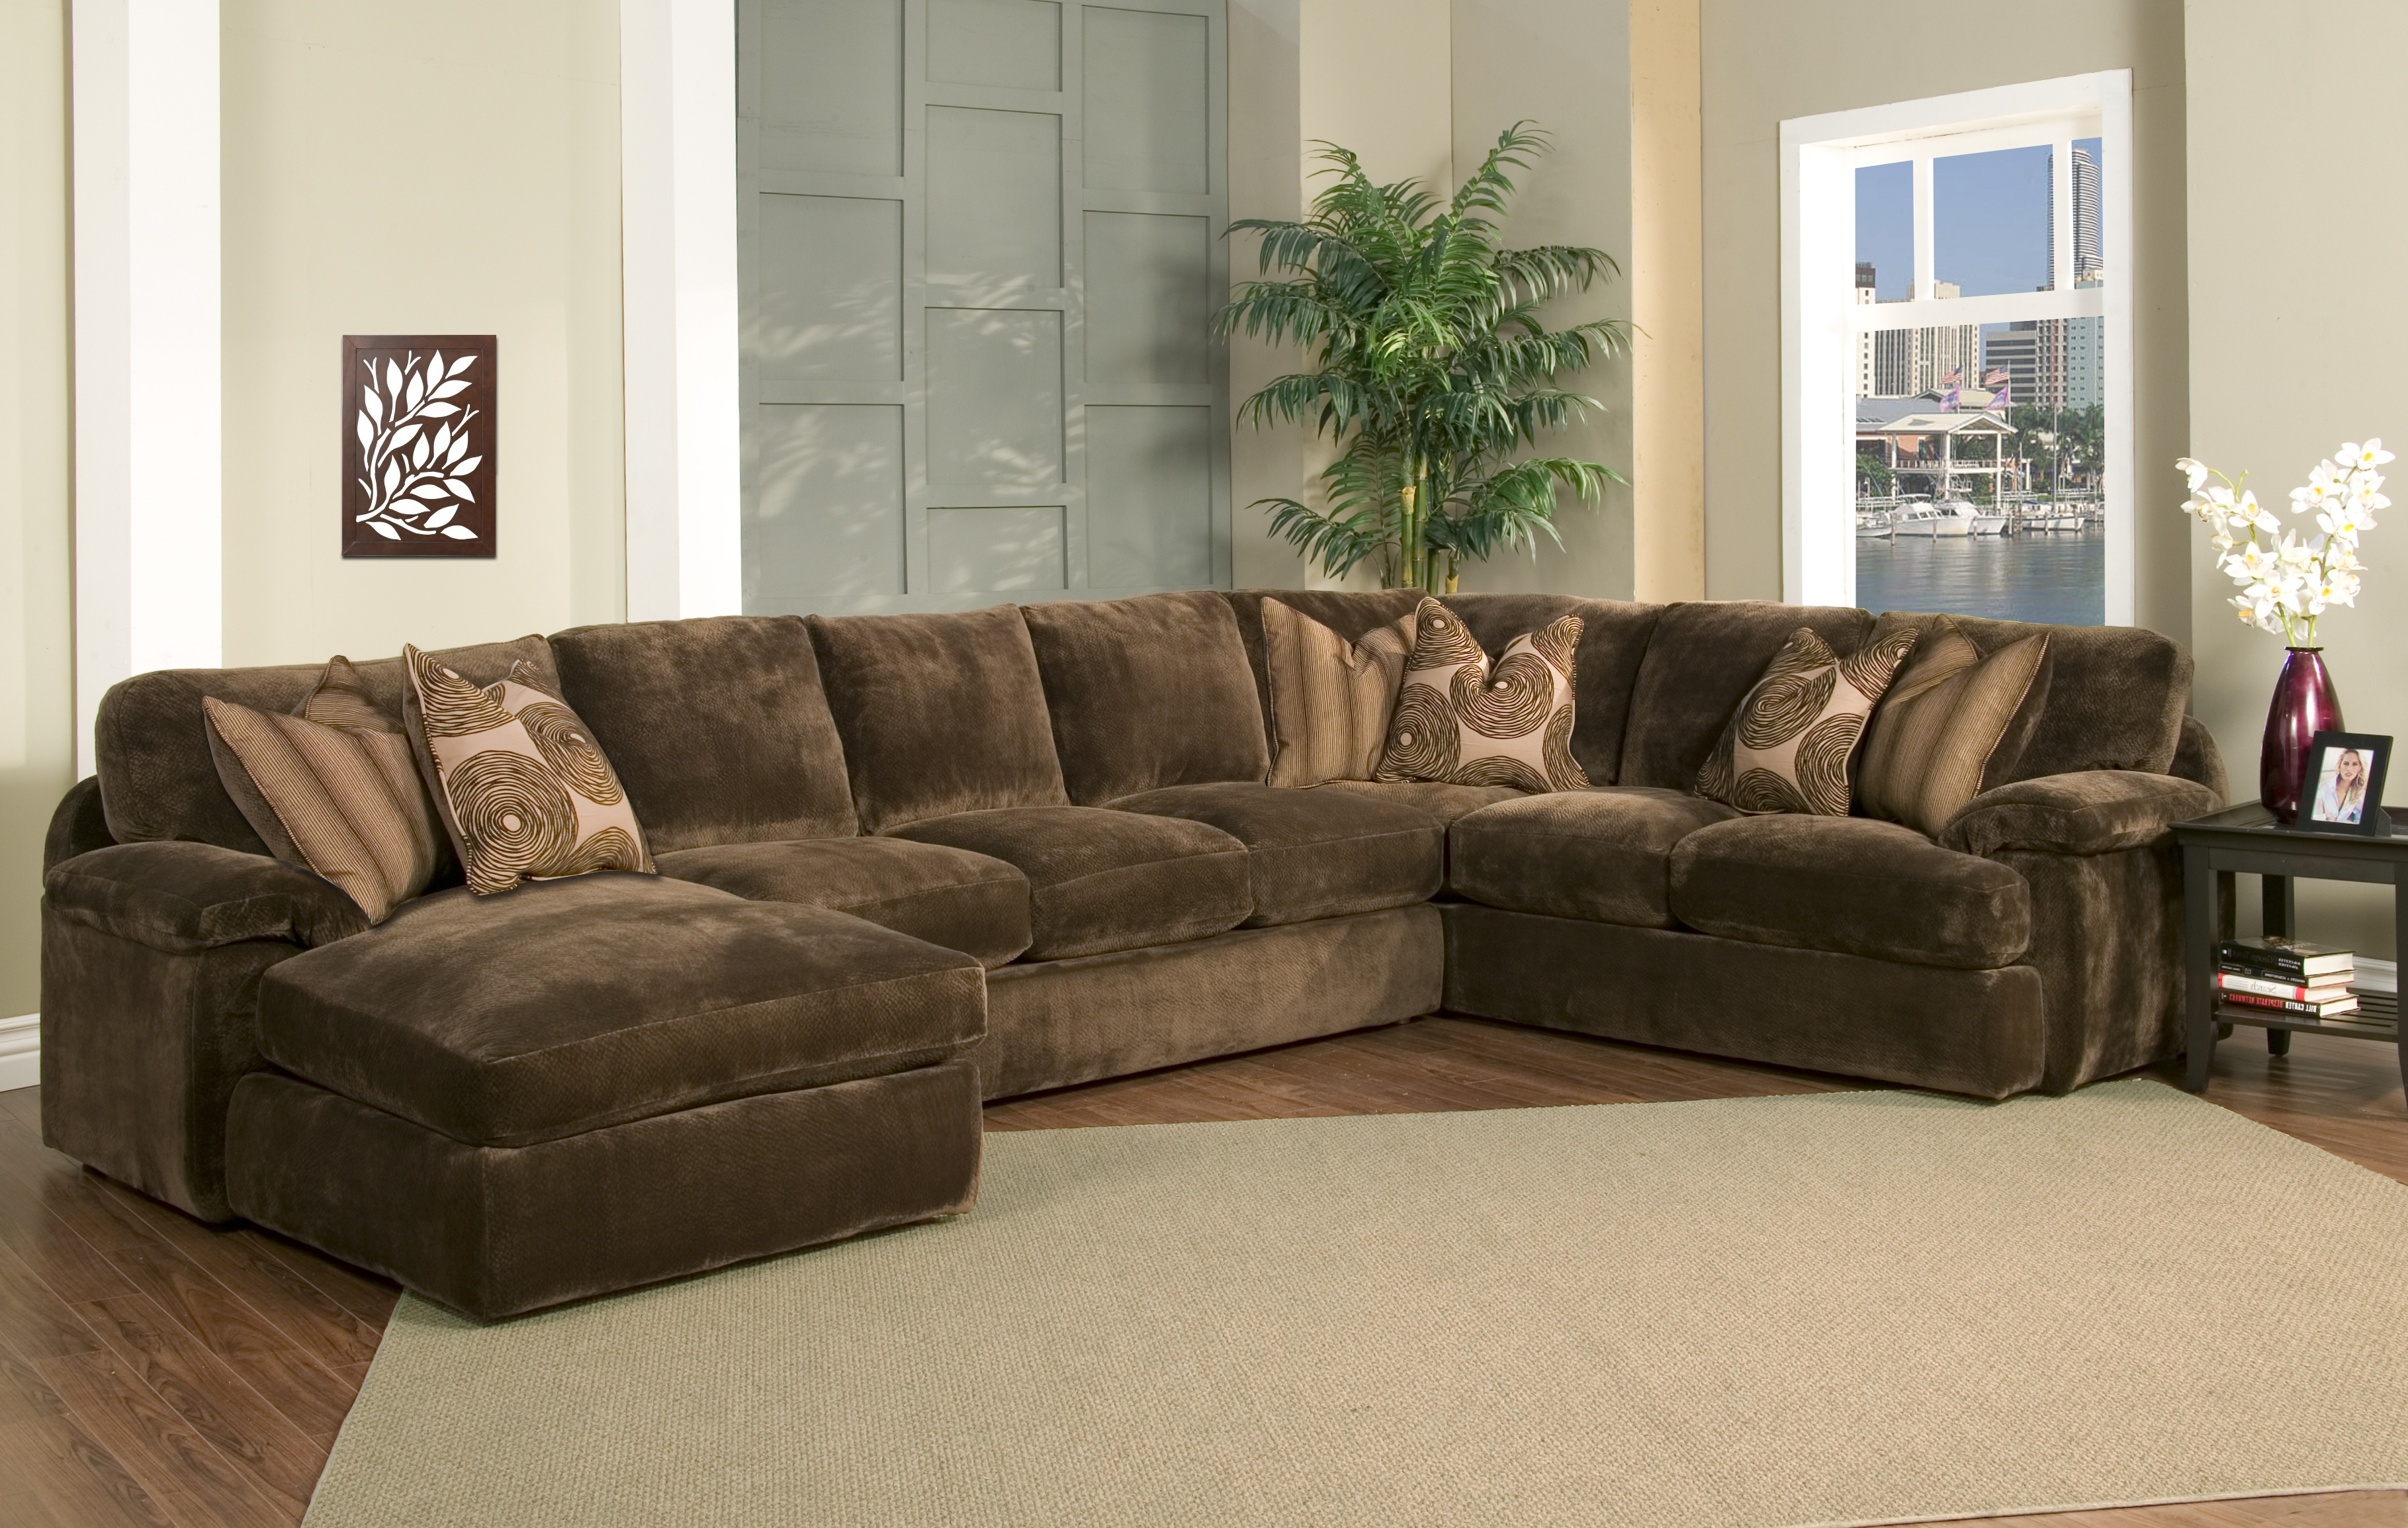 Down Sectional Sofas In Most Up To Date Robert Michaels Sofas And Sectionals (Gallery 4 of 20)